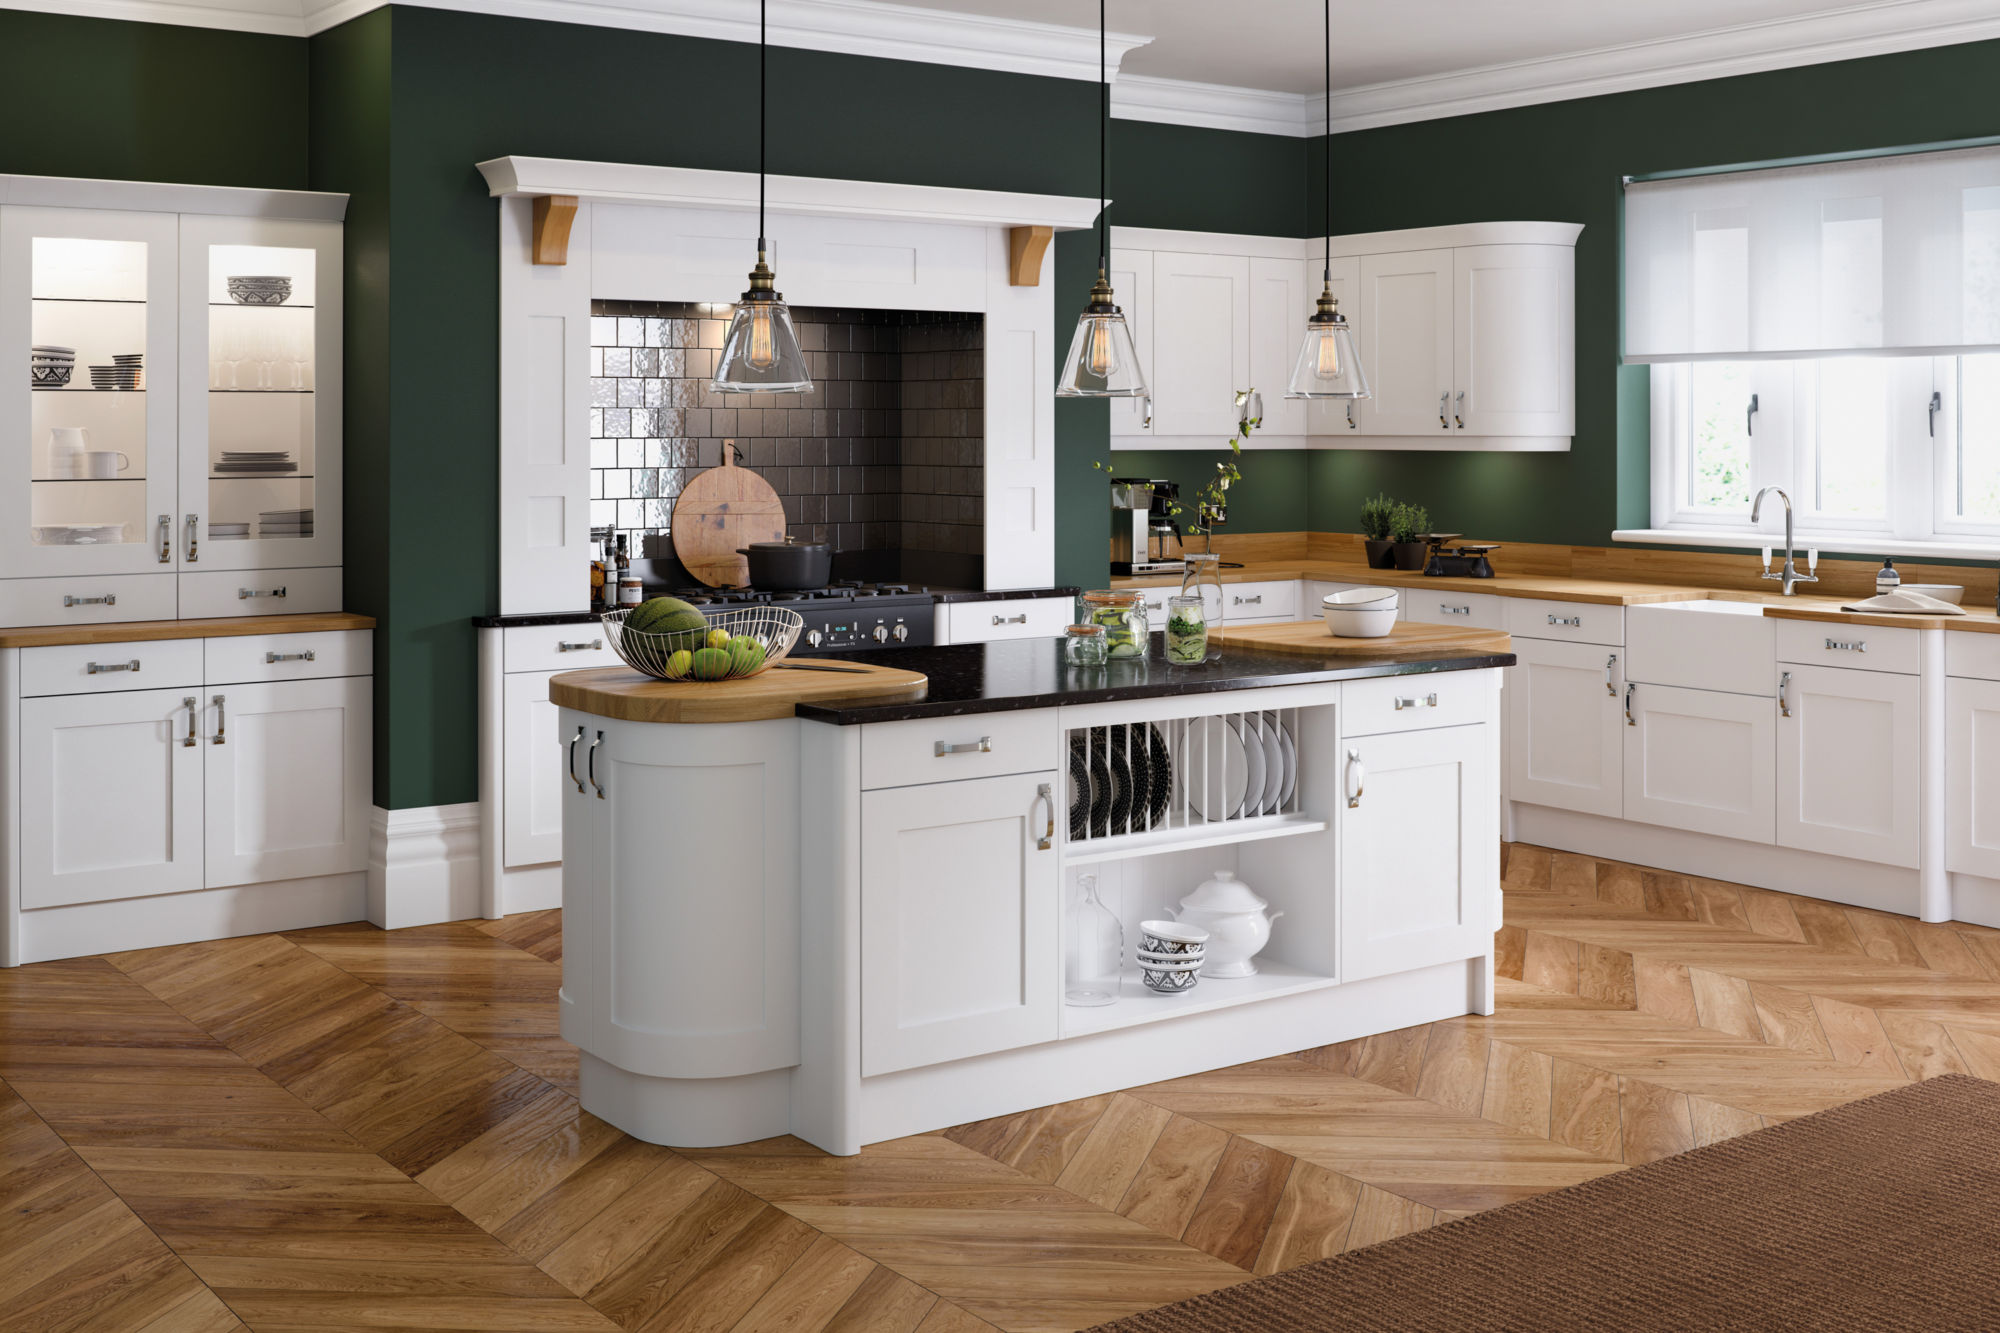 Tkc launches the oxford range of classic shaker doors with for Oxford kitchen and bath